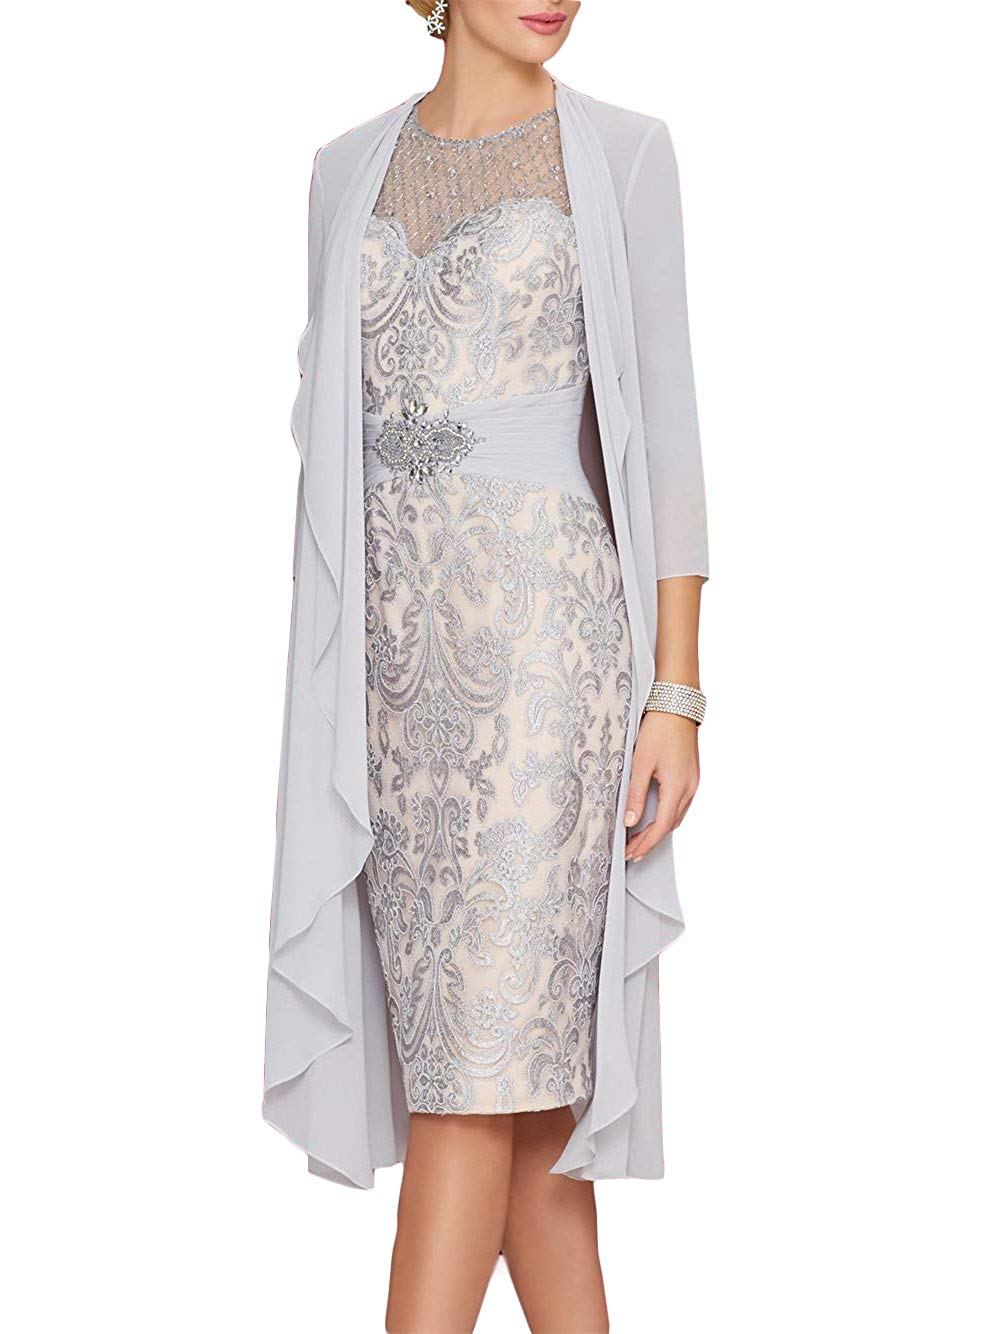 2020 Lace Mother Of The Bride Dresses With Chiffon Jacket 3/4 Sleeves Applique Beaded Women Formal Evening Party Gowns Hot Sale